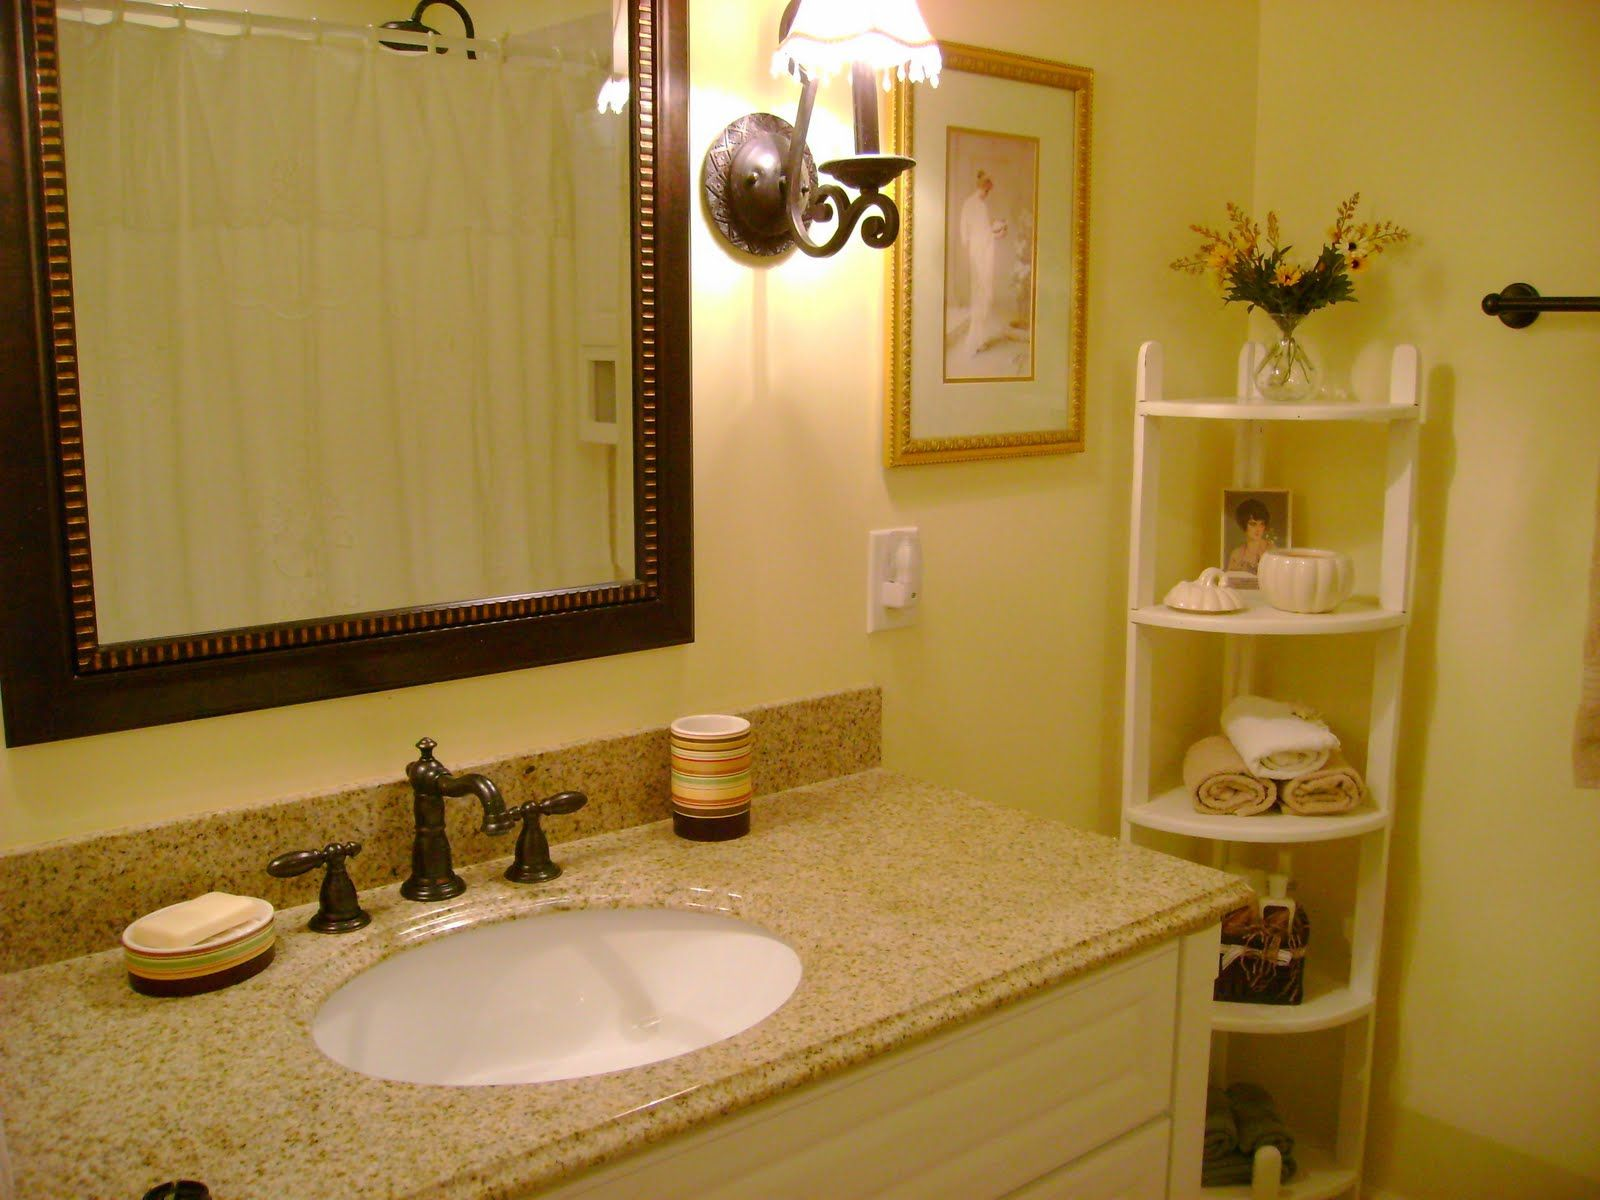 Use White Vanity and Granite Top for Traditional Room with Wooden Framed Bathroom Mirrors